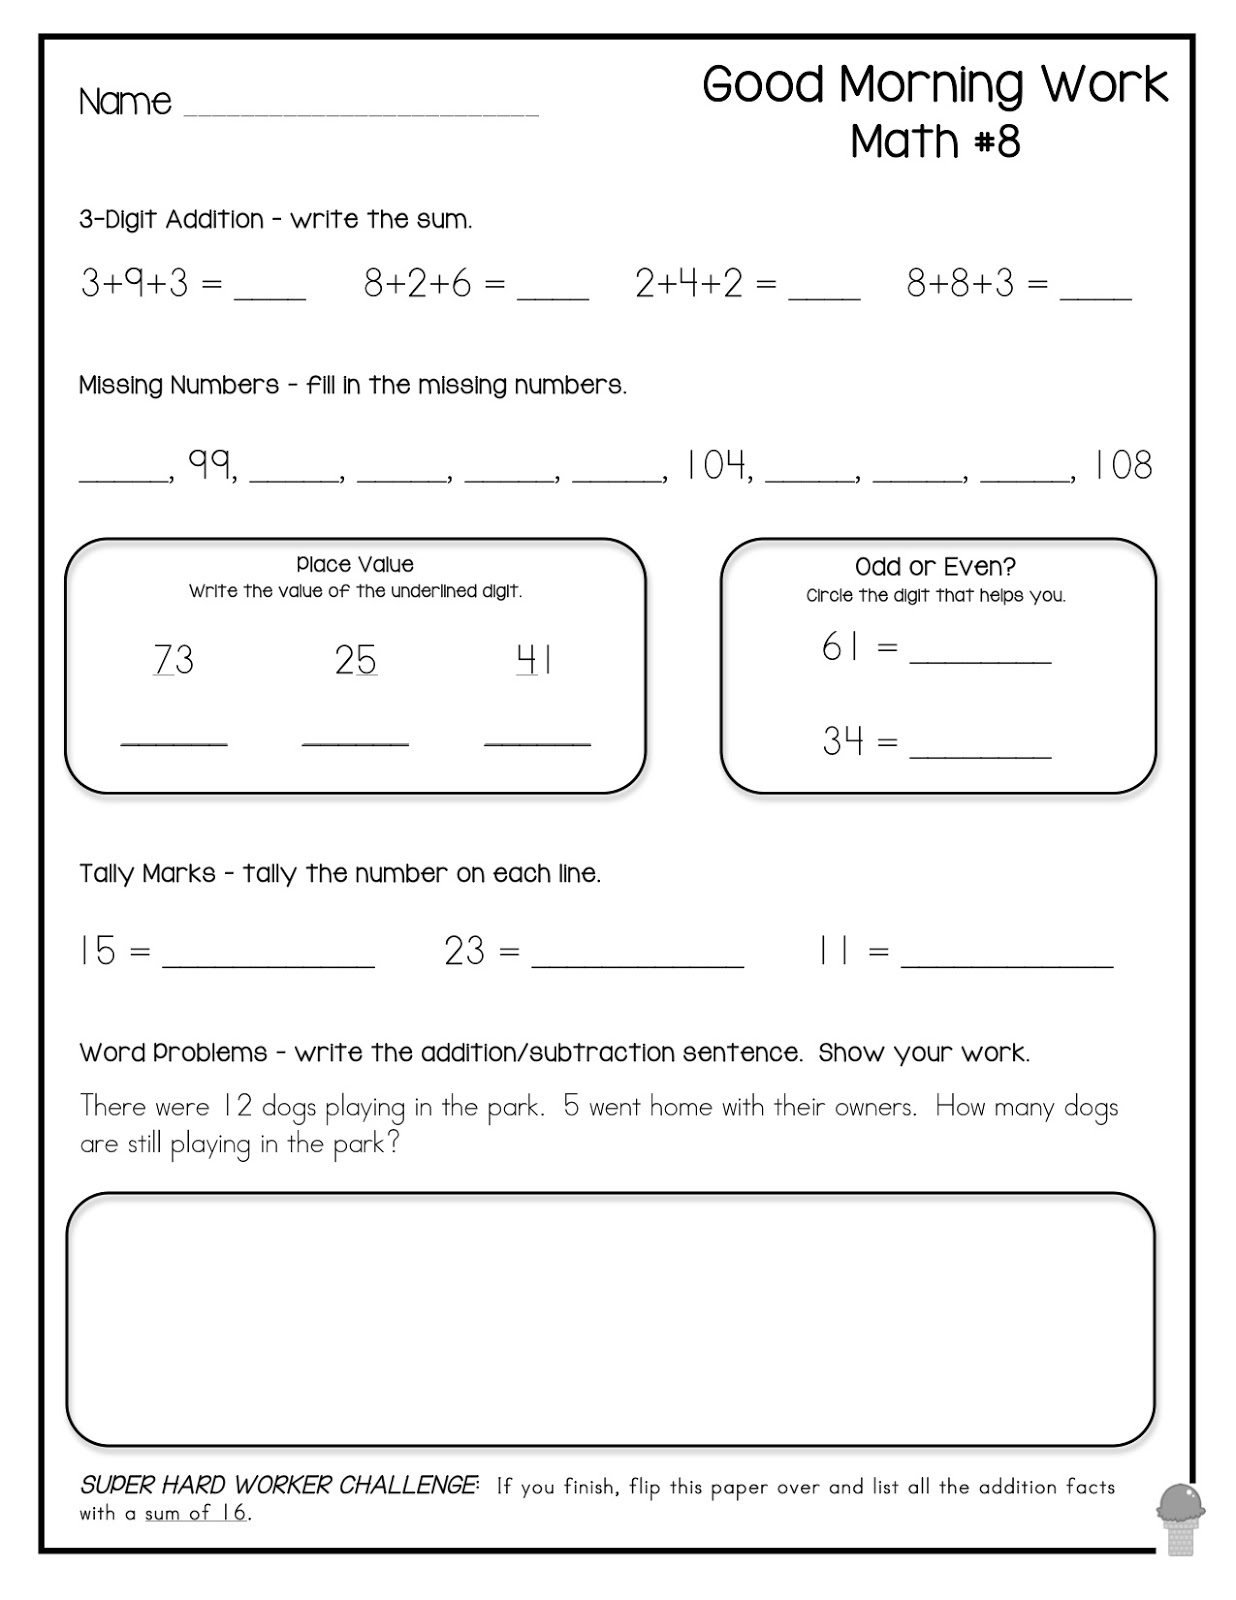 Spelling Worksheet Morning Work